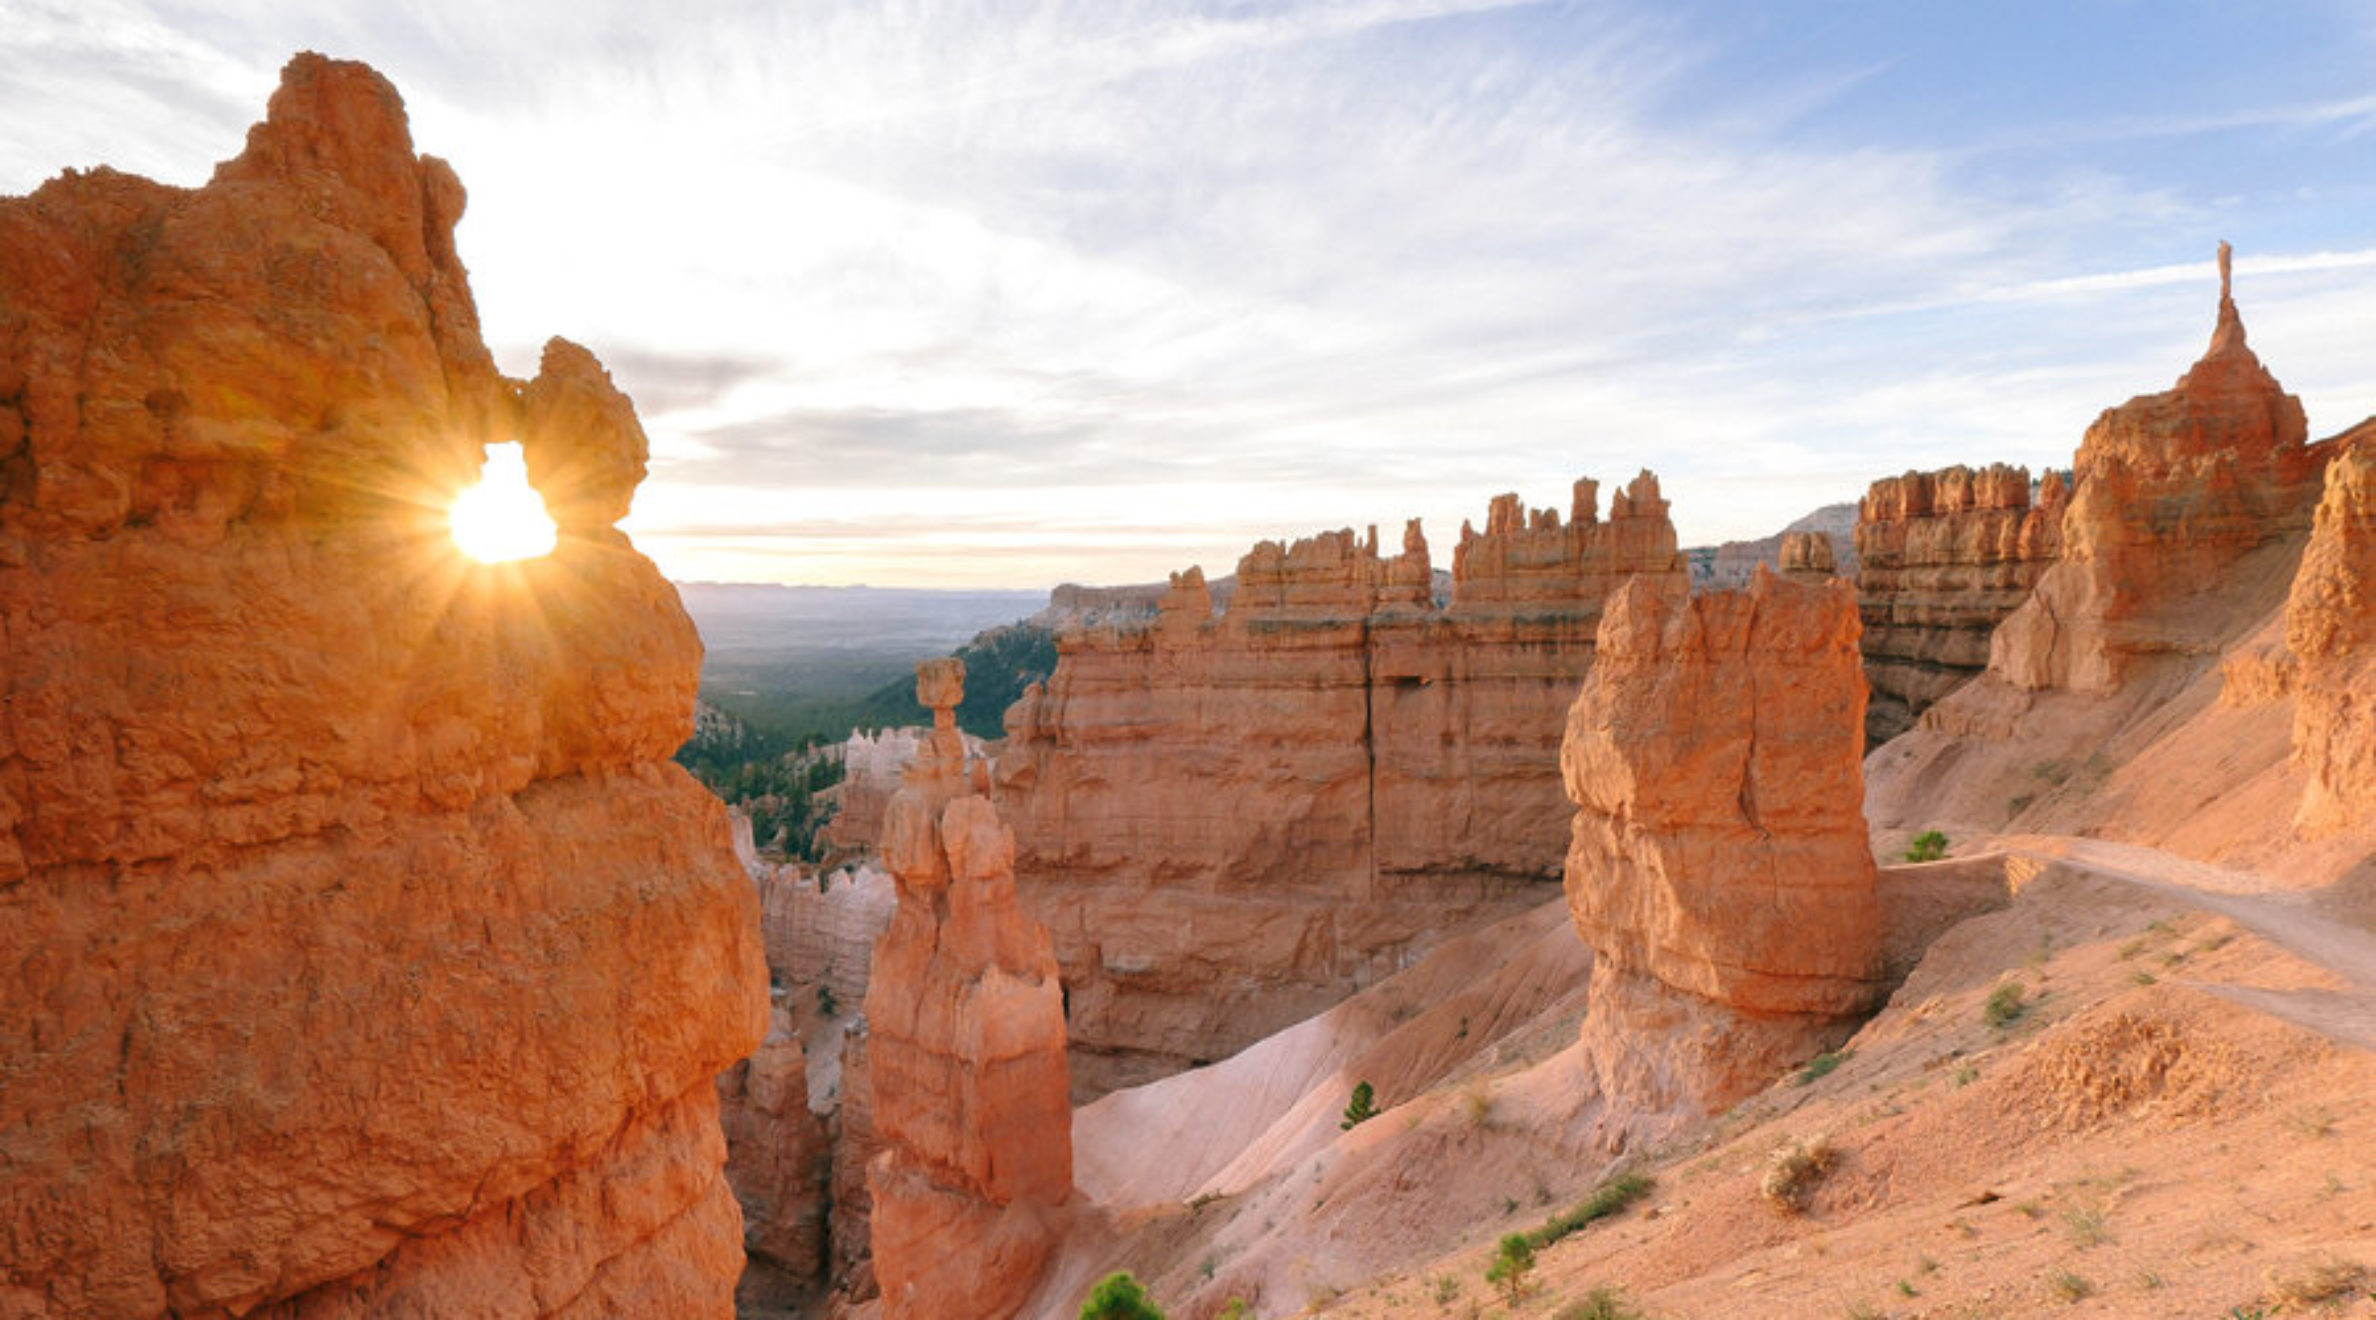 The hoodoos at Bryce Canyon National Park off Highway 89